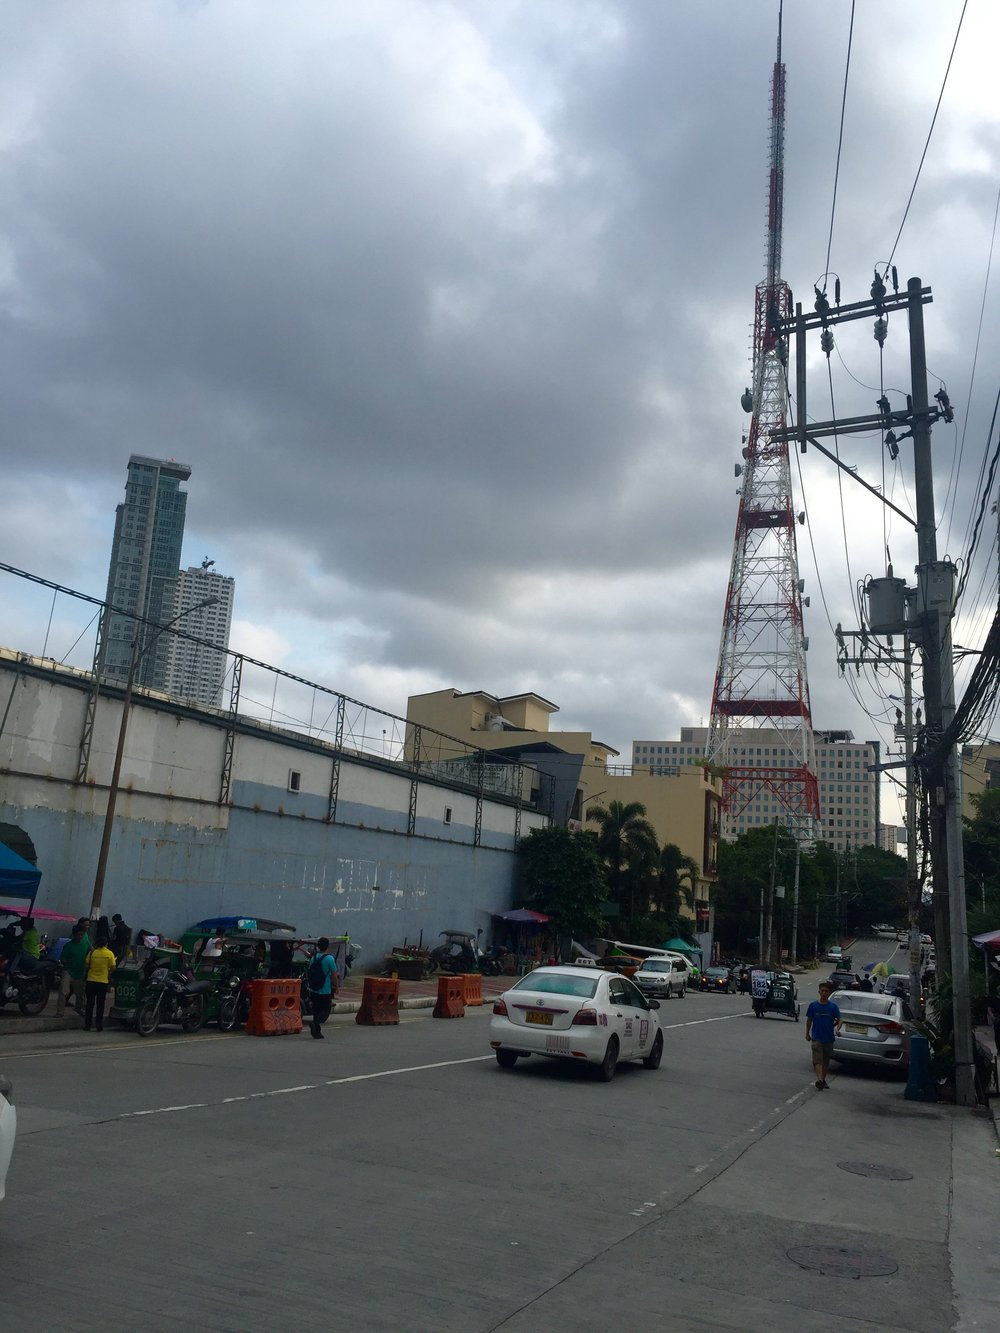 Mother Ignacia Ave. (formerly Cebu Ave.) from EDSA, with ABS-CBN tower in background